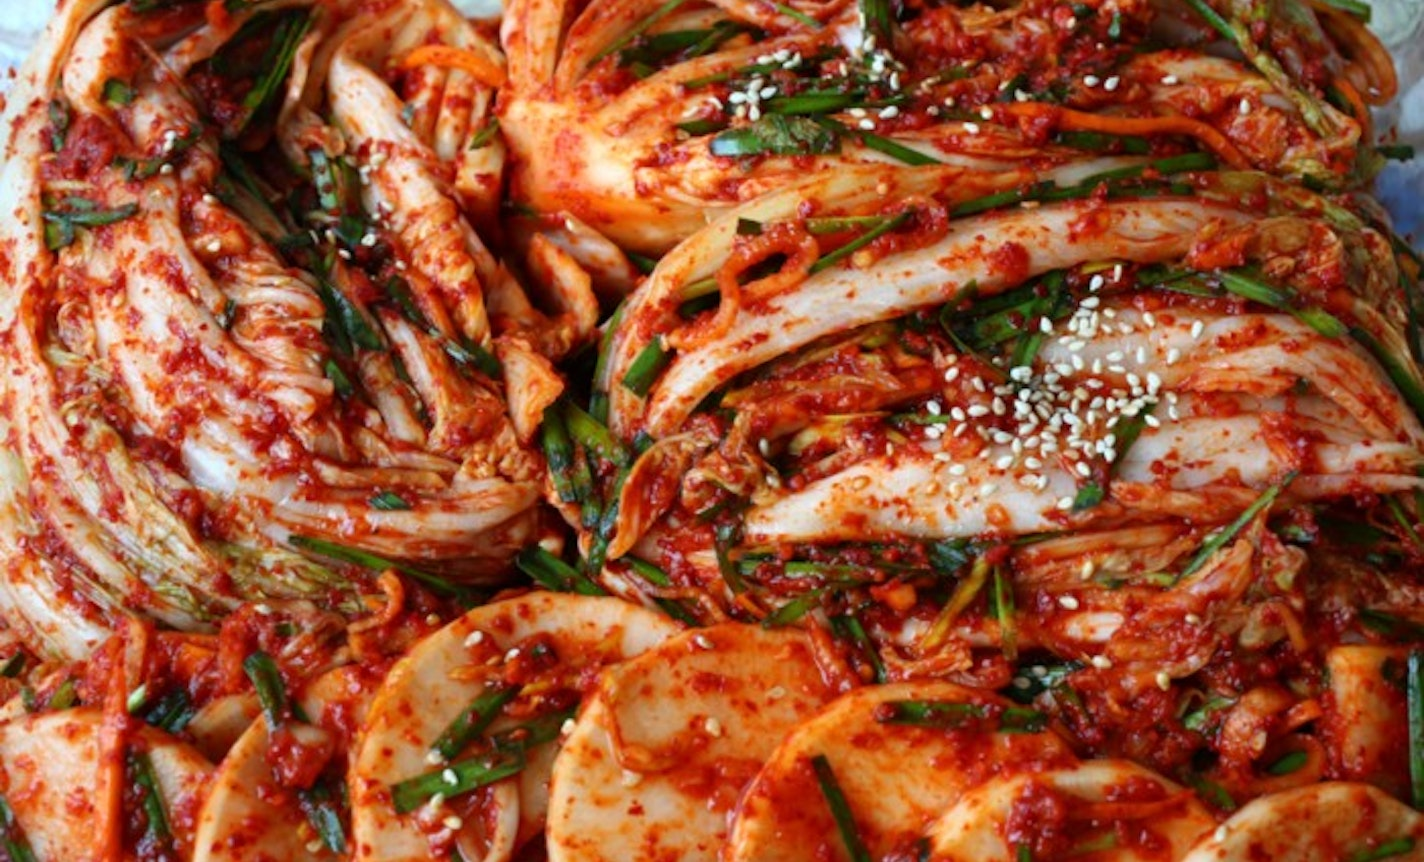 Preserve and Nourish: Kimchi Making and Storytelling